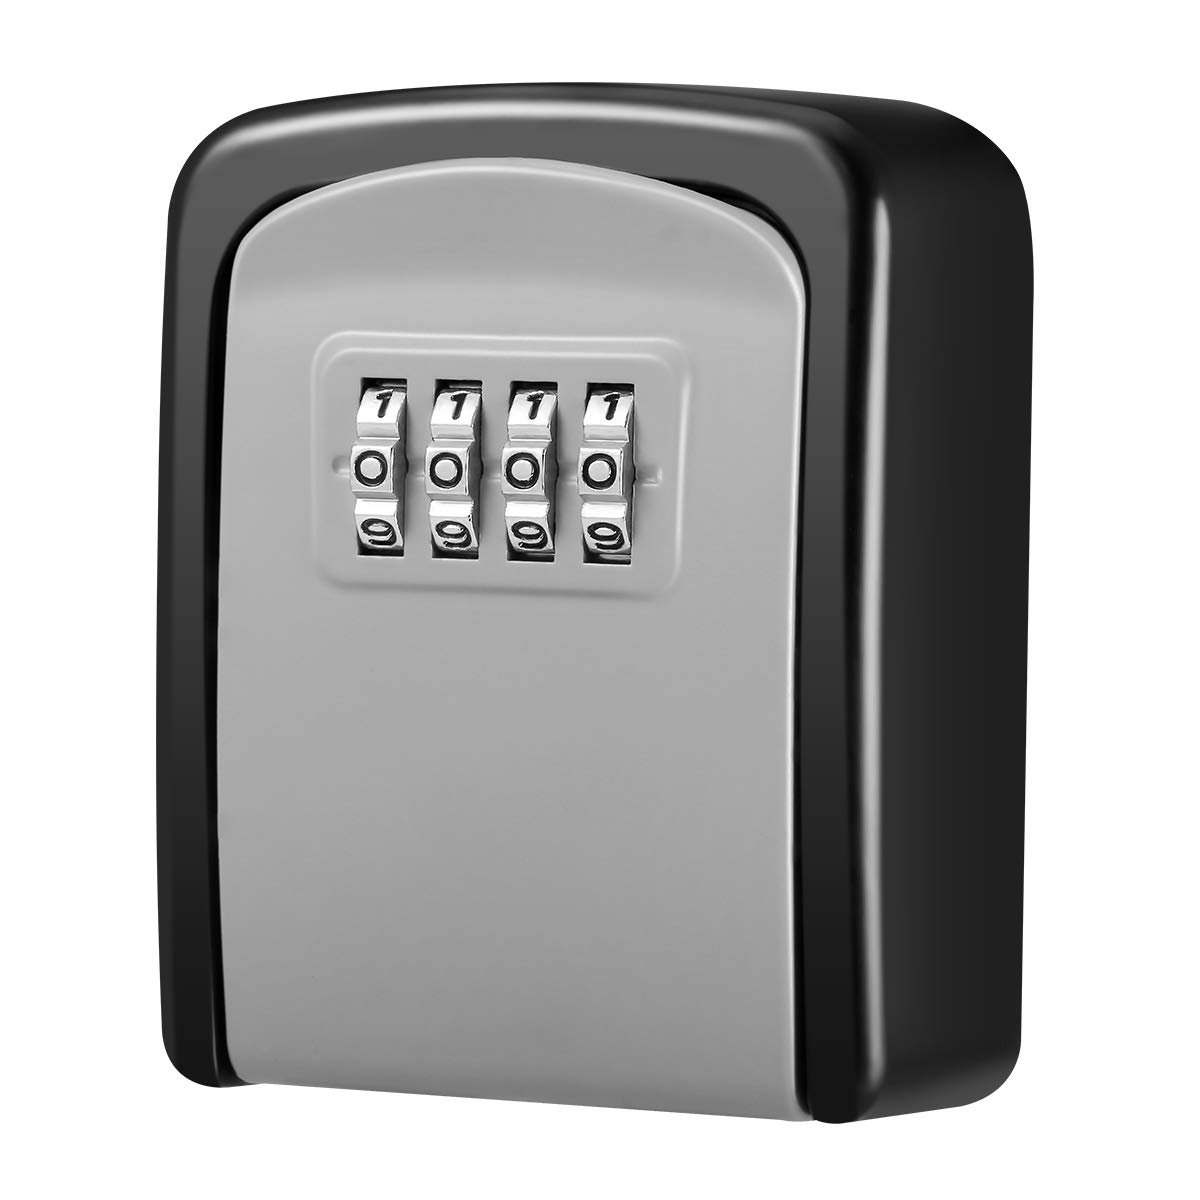 [New Version] KeeKit Key Lock Box with 4 Digit Combination, Resettable Code Key Storage Lock Box, Wall Mounted Key Safe Box Waterproof, 5 Key Capacity for Car, Home, Warehouse, Office, Indoor, Outdoor by KeeKit